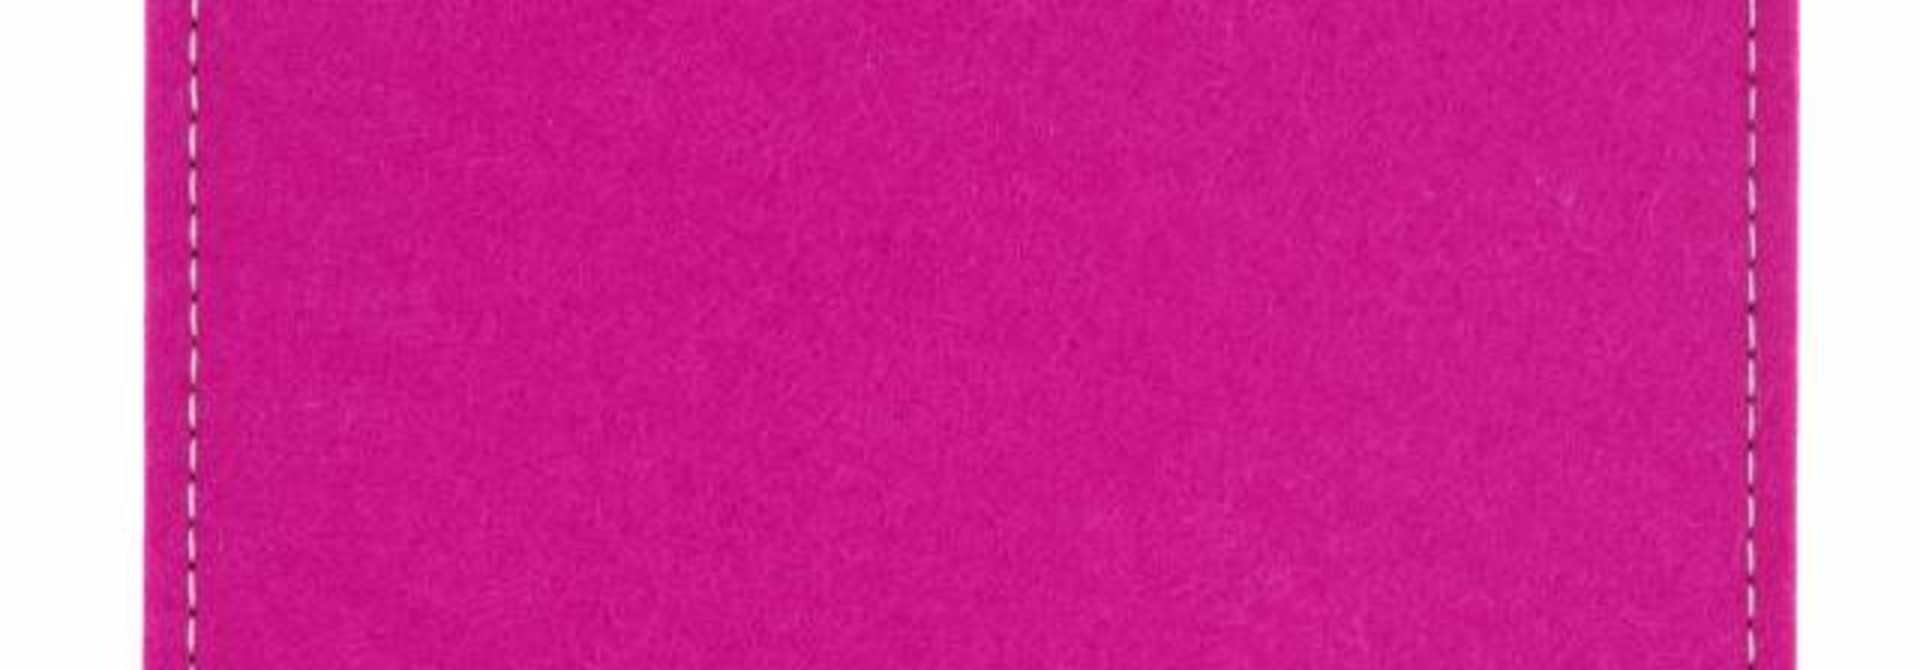 Swift / Spin Sleeve Pink